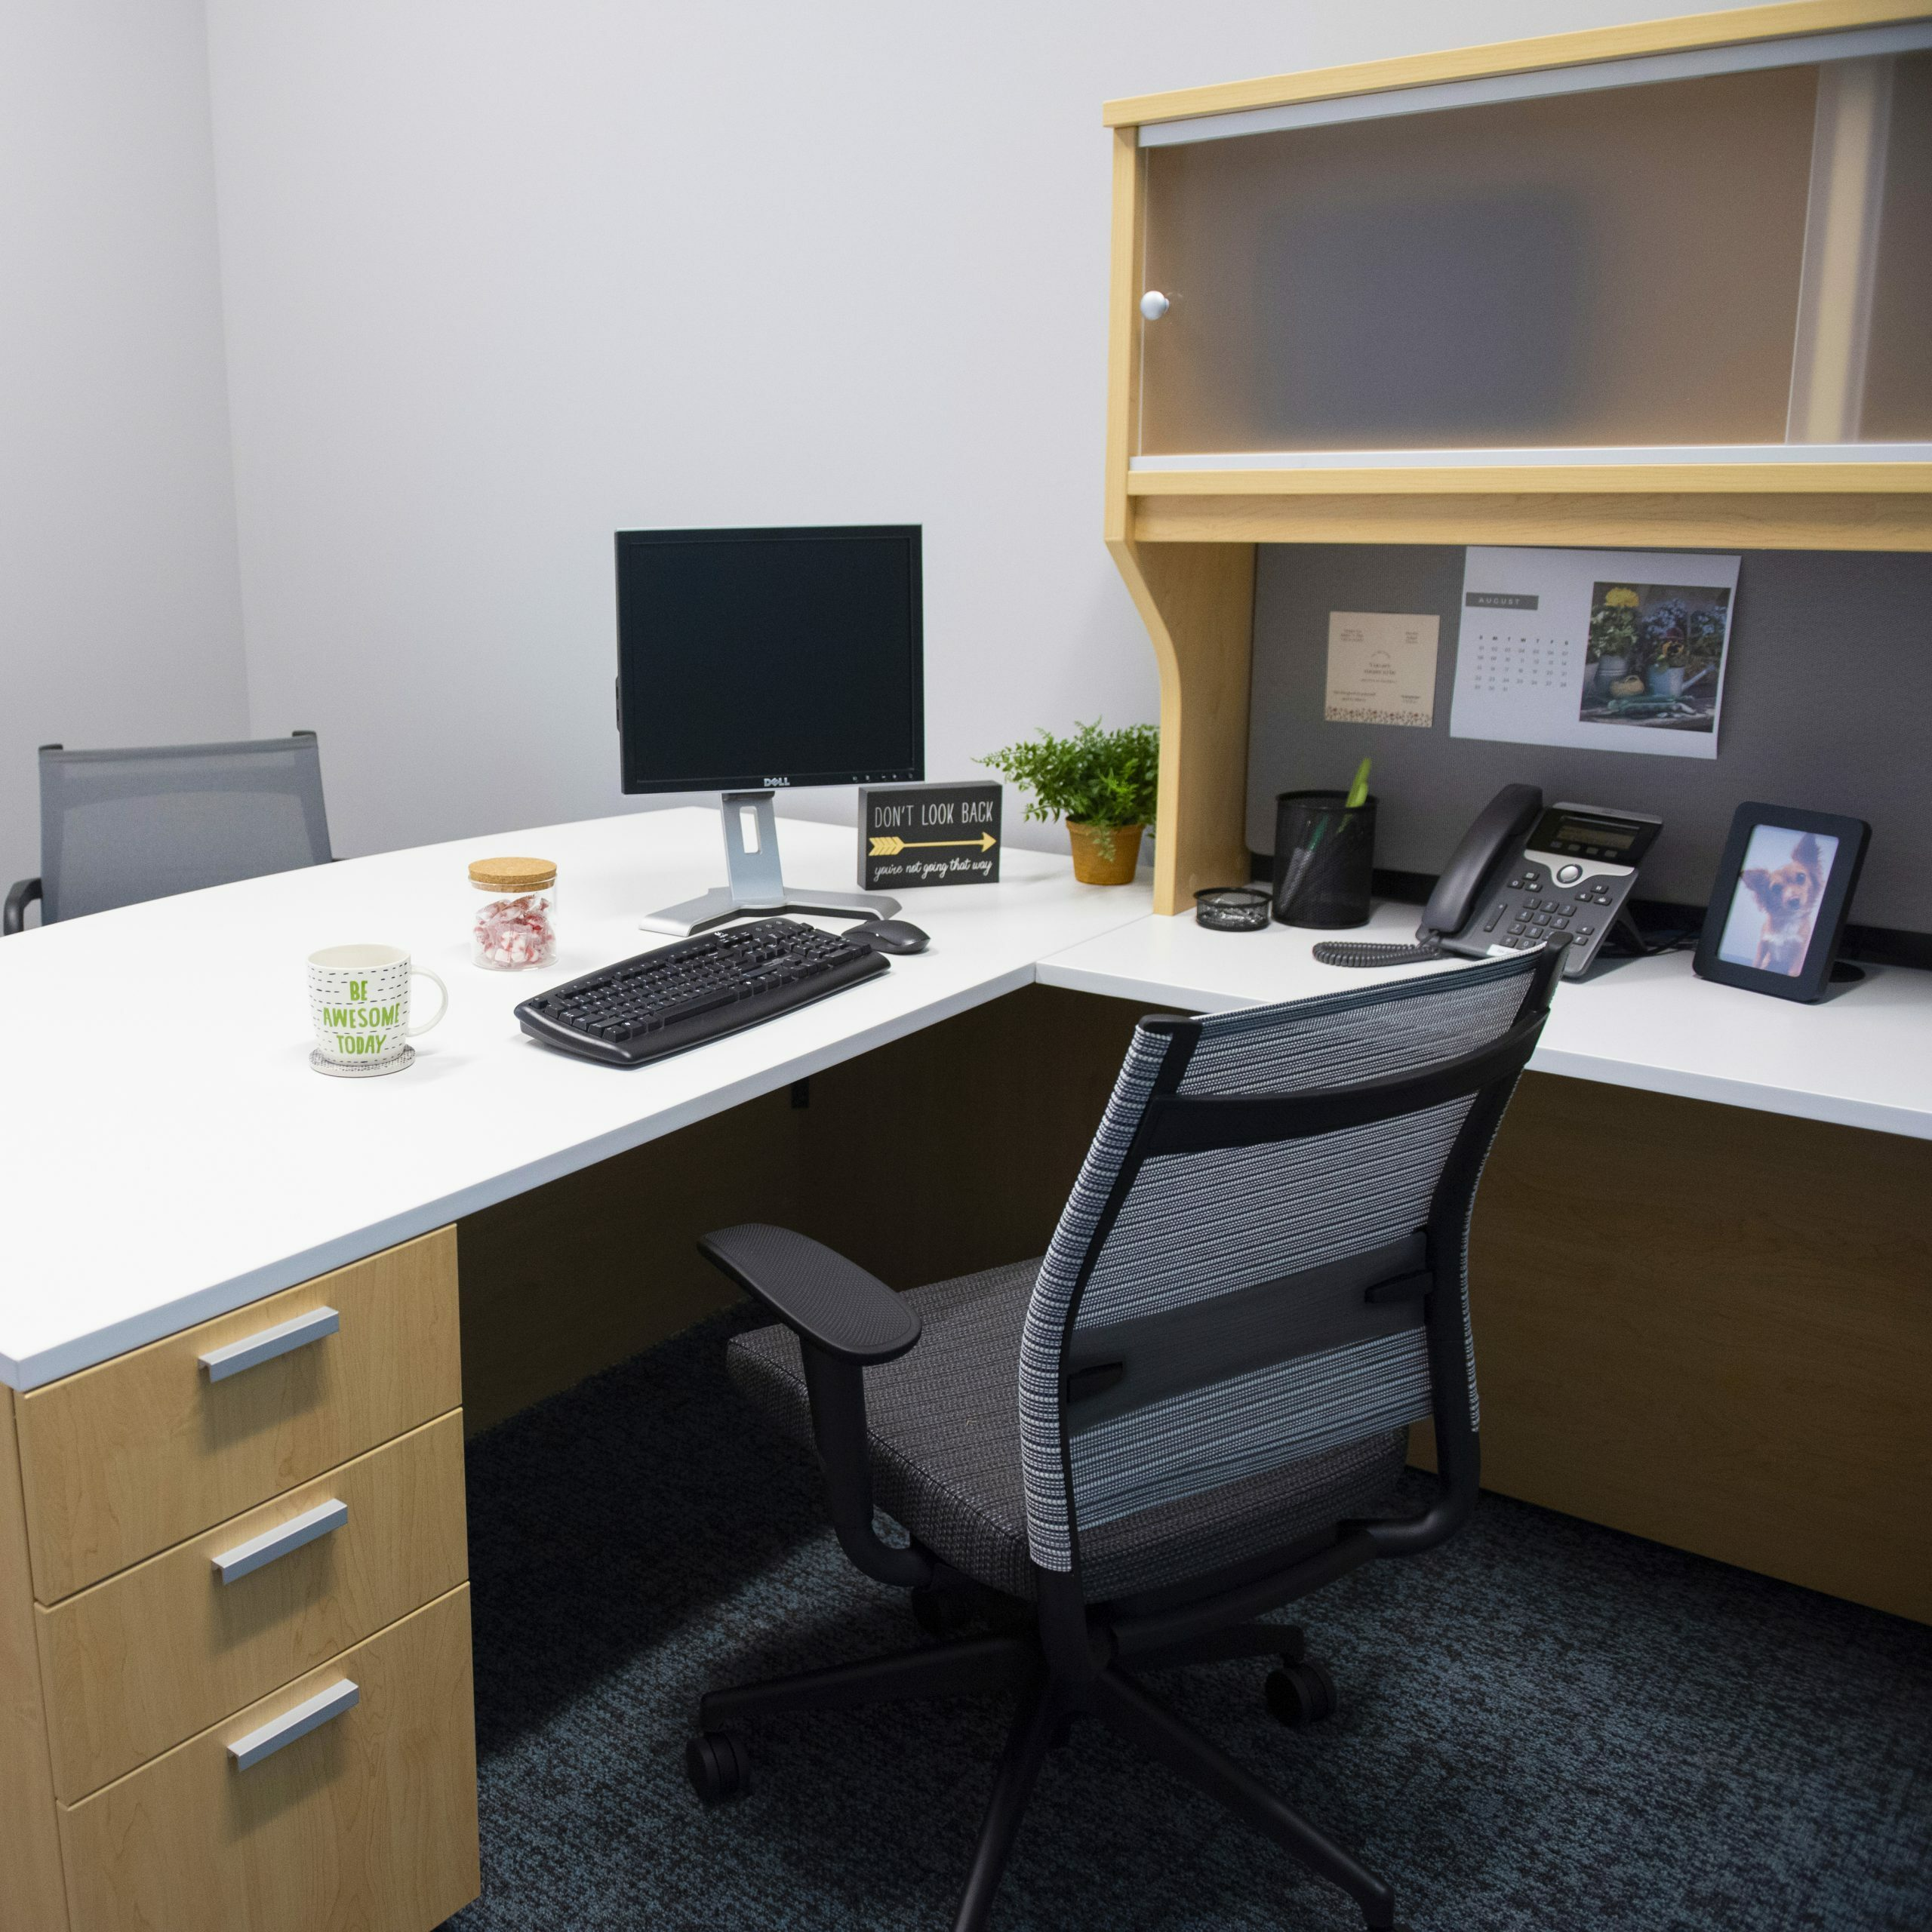 The Ignite business incubator offices August 9, 2021 on the campus of Washington & Jefferson College in Washington, Pa.